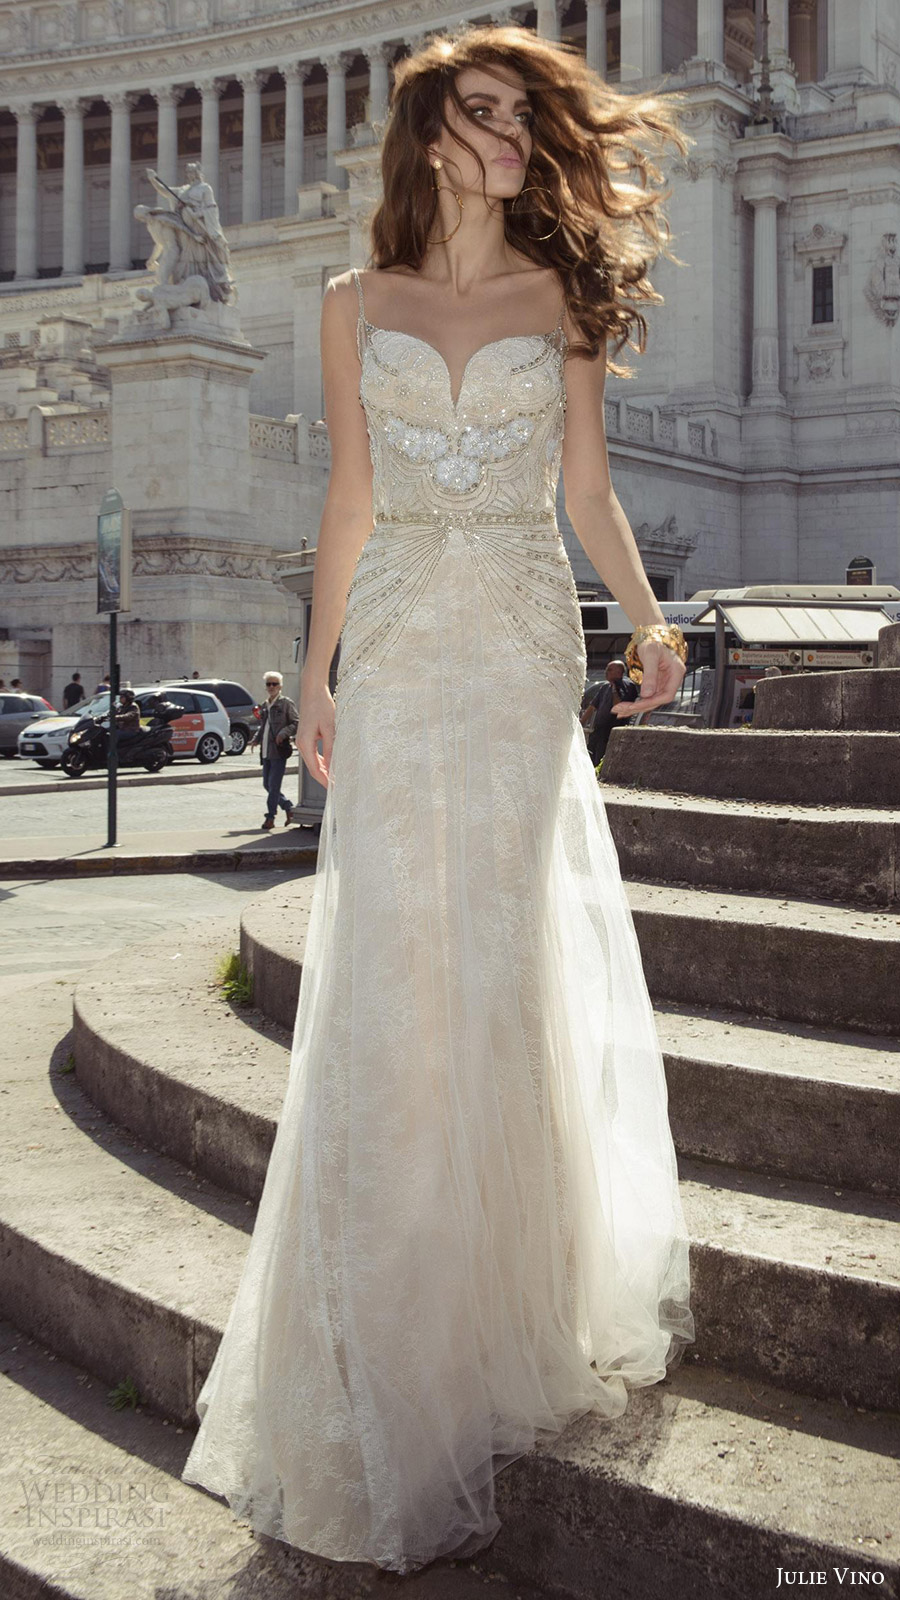 julie vino bridal spring 2017 sleeveless sweetheart sheath beaded bodice wedding dress (vita) mv champagne color